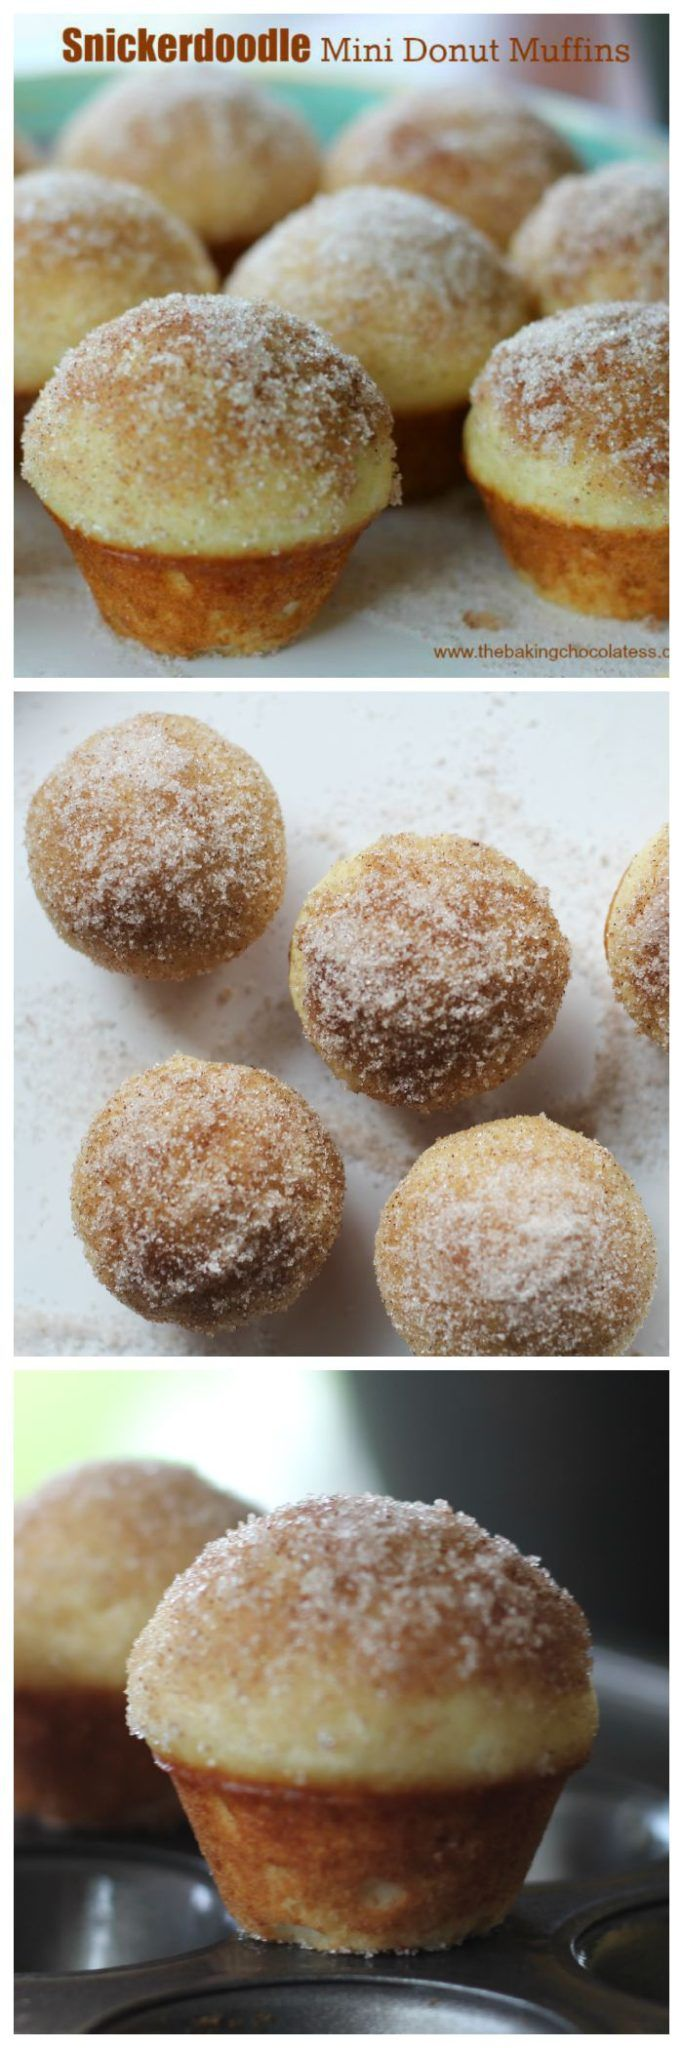 Snickerdoodle Mini Donut Muffins via @https://www.pinterest.com/BaknChocolaTess/